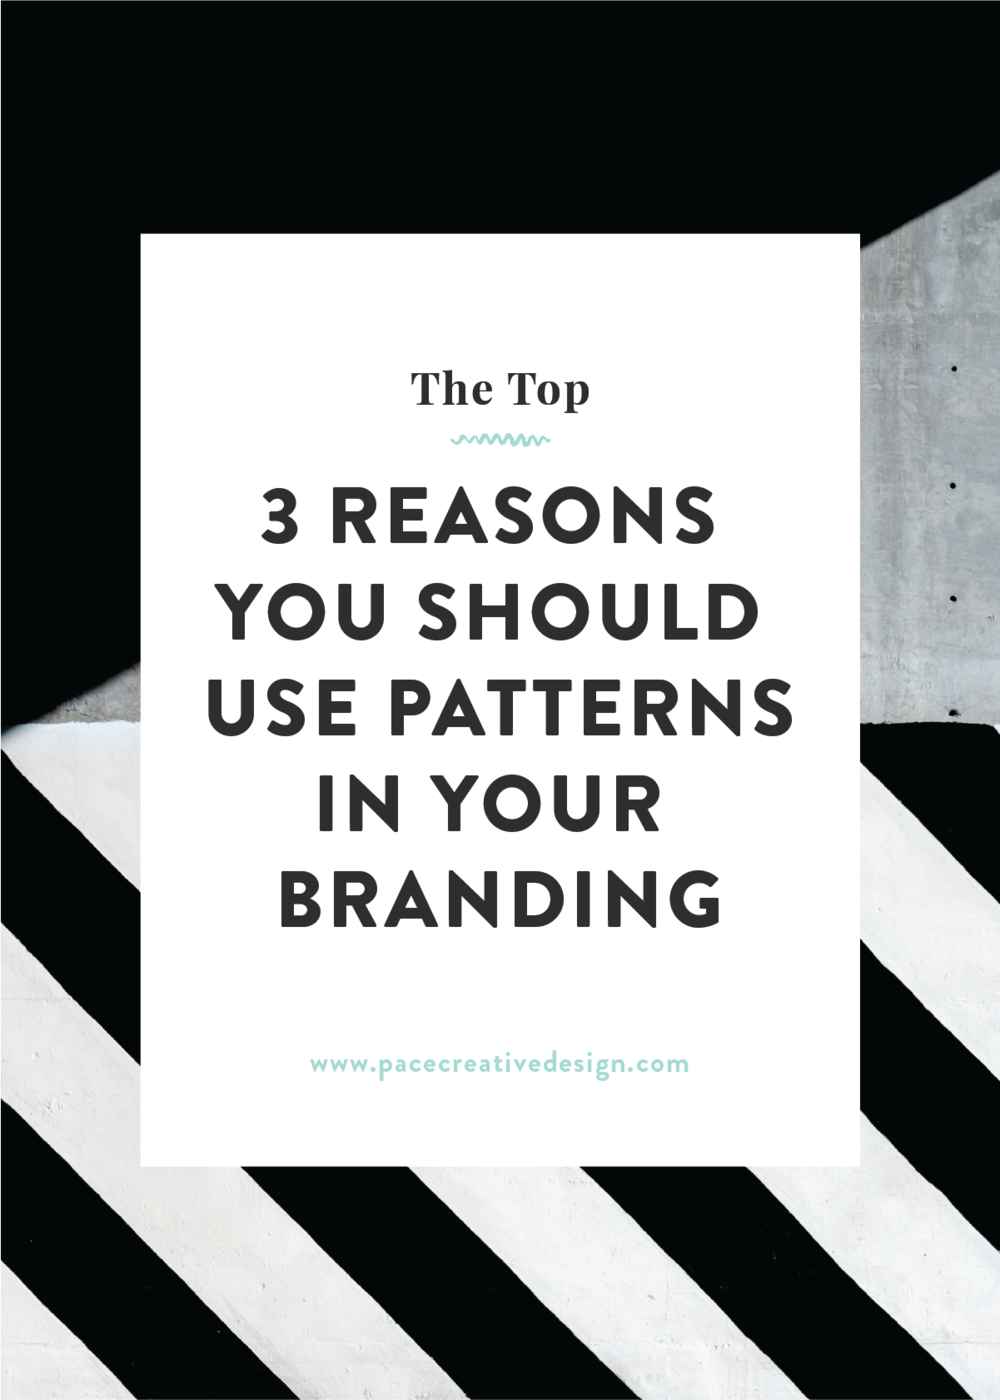 The Top 3 Reasons You Should Use Patterns in your Branding | Pace Creative Design Studio